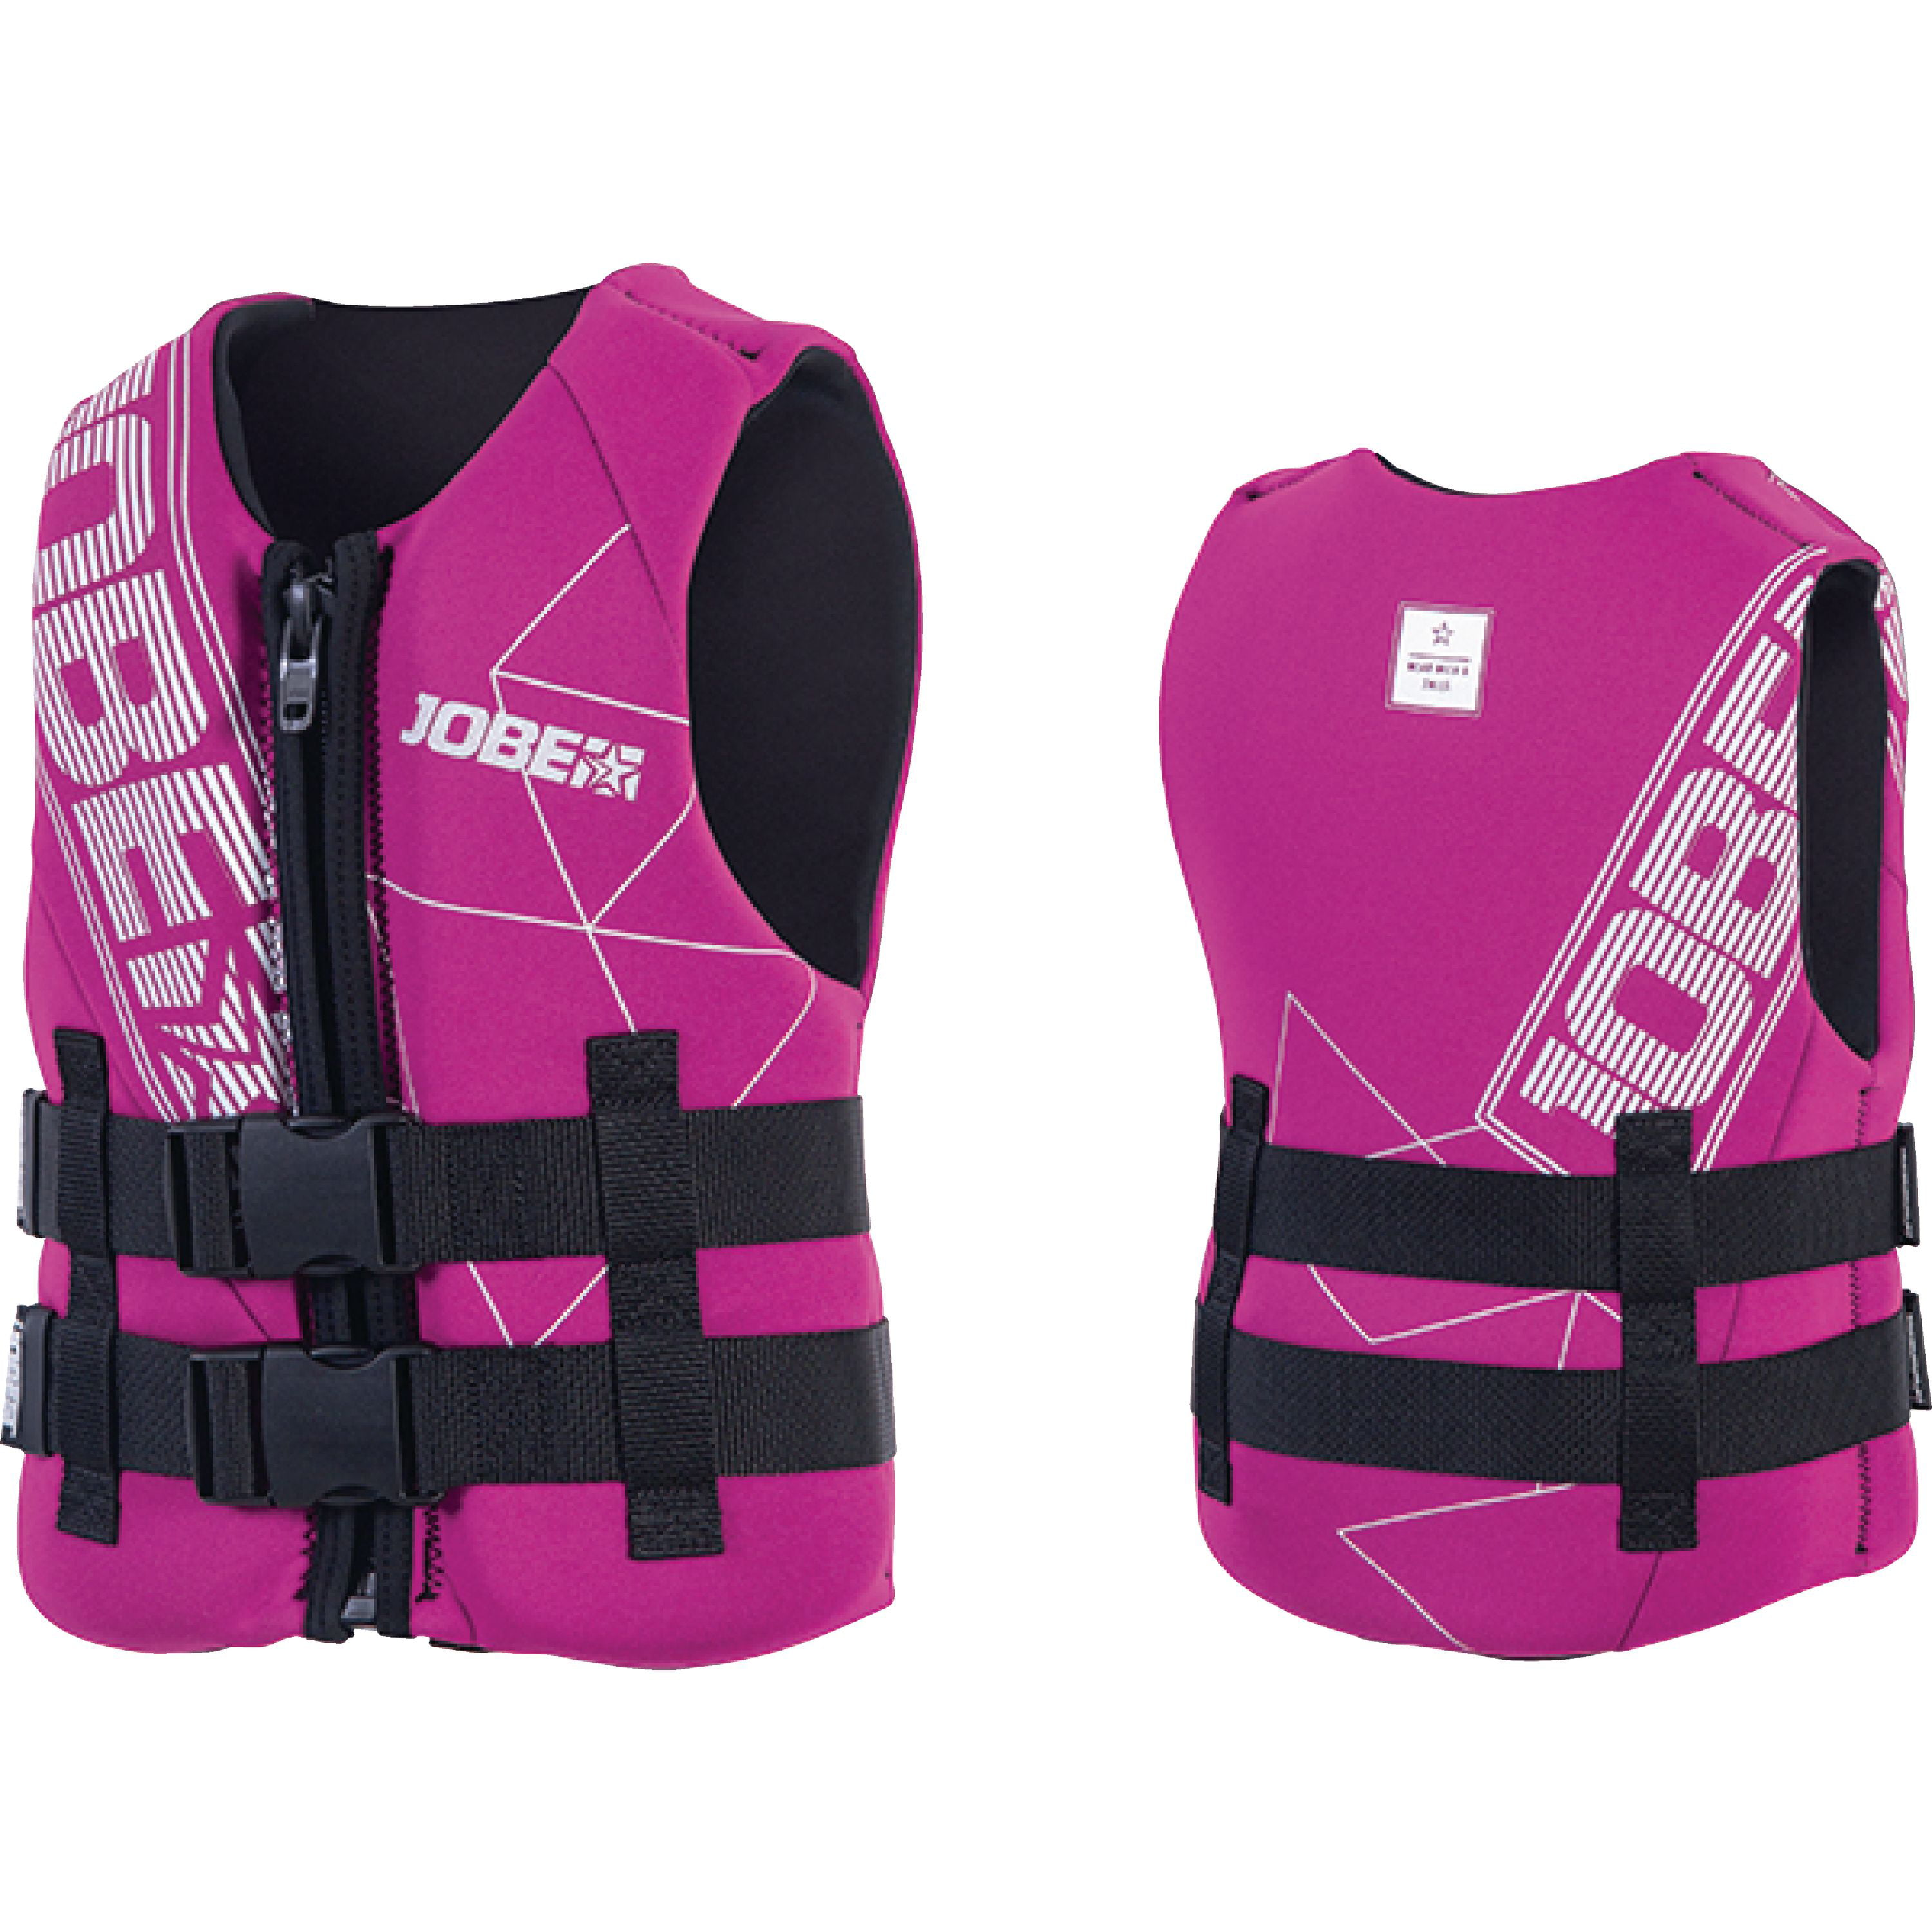 Jobe 247718009 Pink 50 to 90 lbs. Youth Neoprene Life Vest by Jobe Sports International